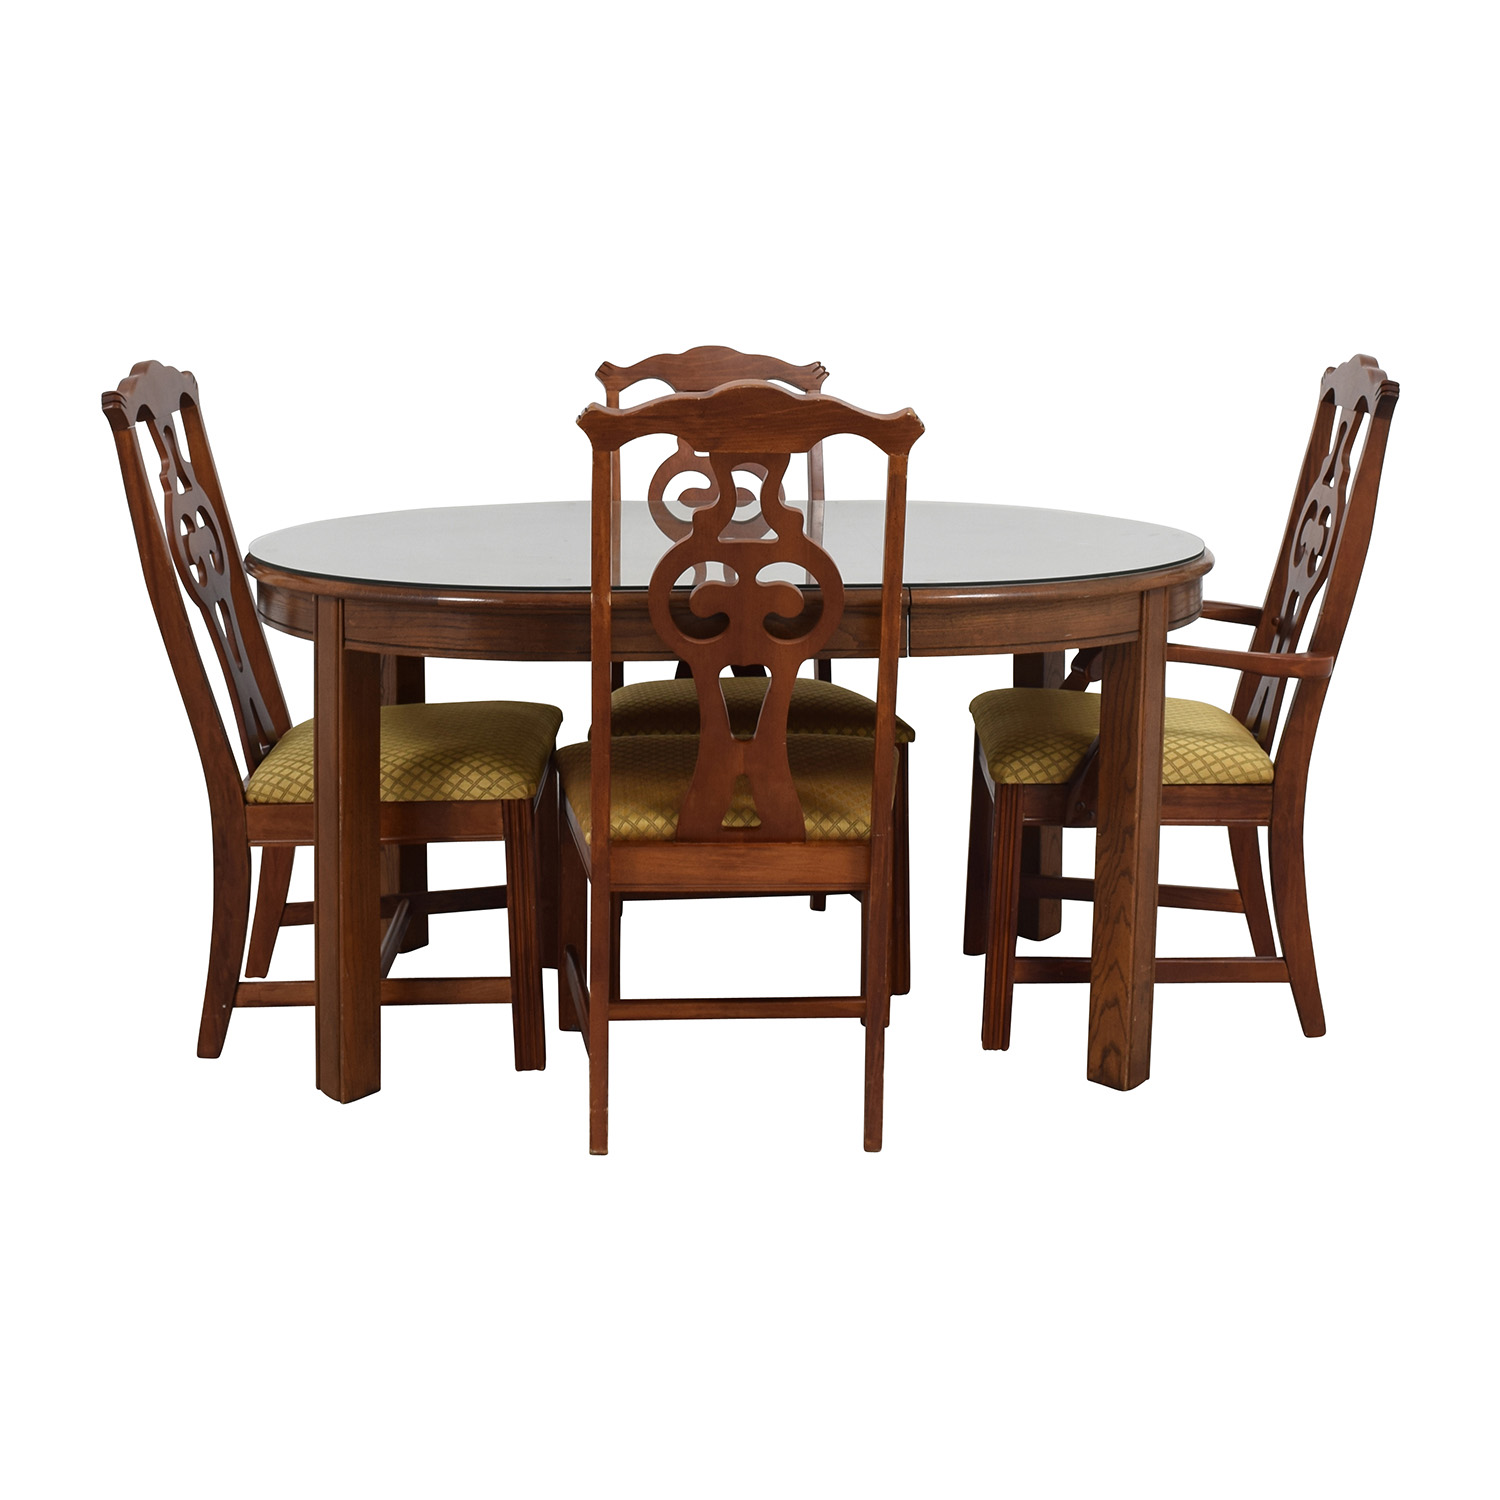 Hagerty Hagerty Wooden Dining Set Dining Sets